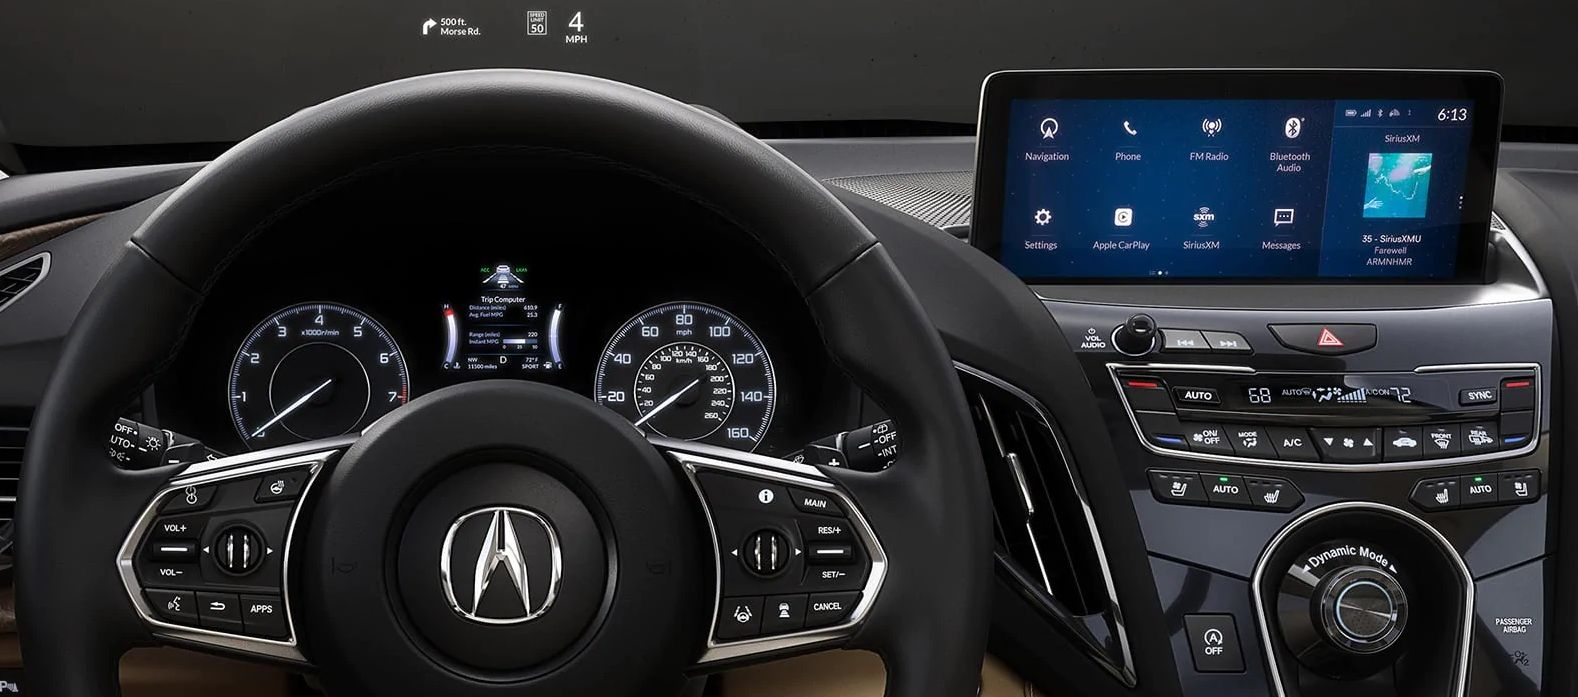 The 2020 RDX's High-Tech Dashboard